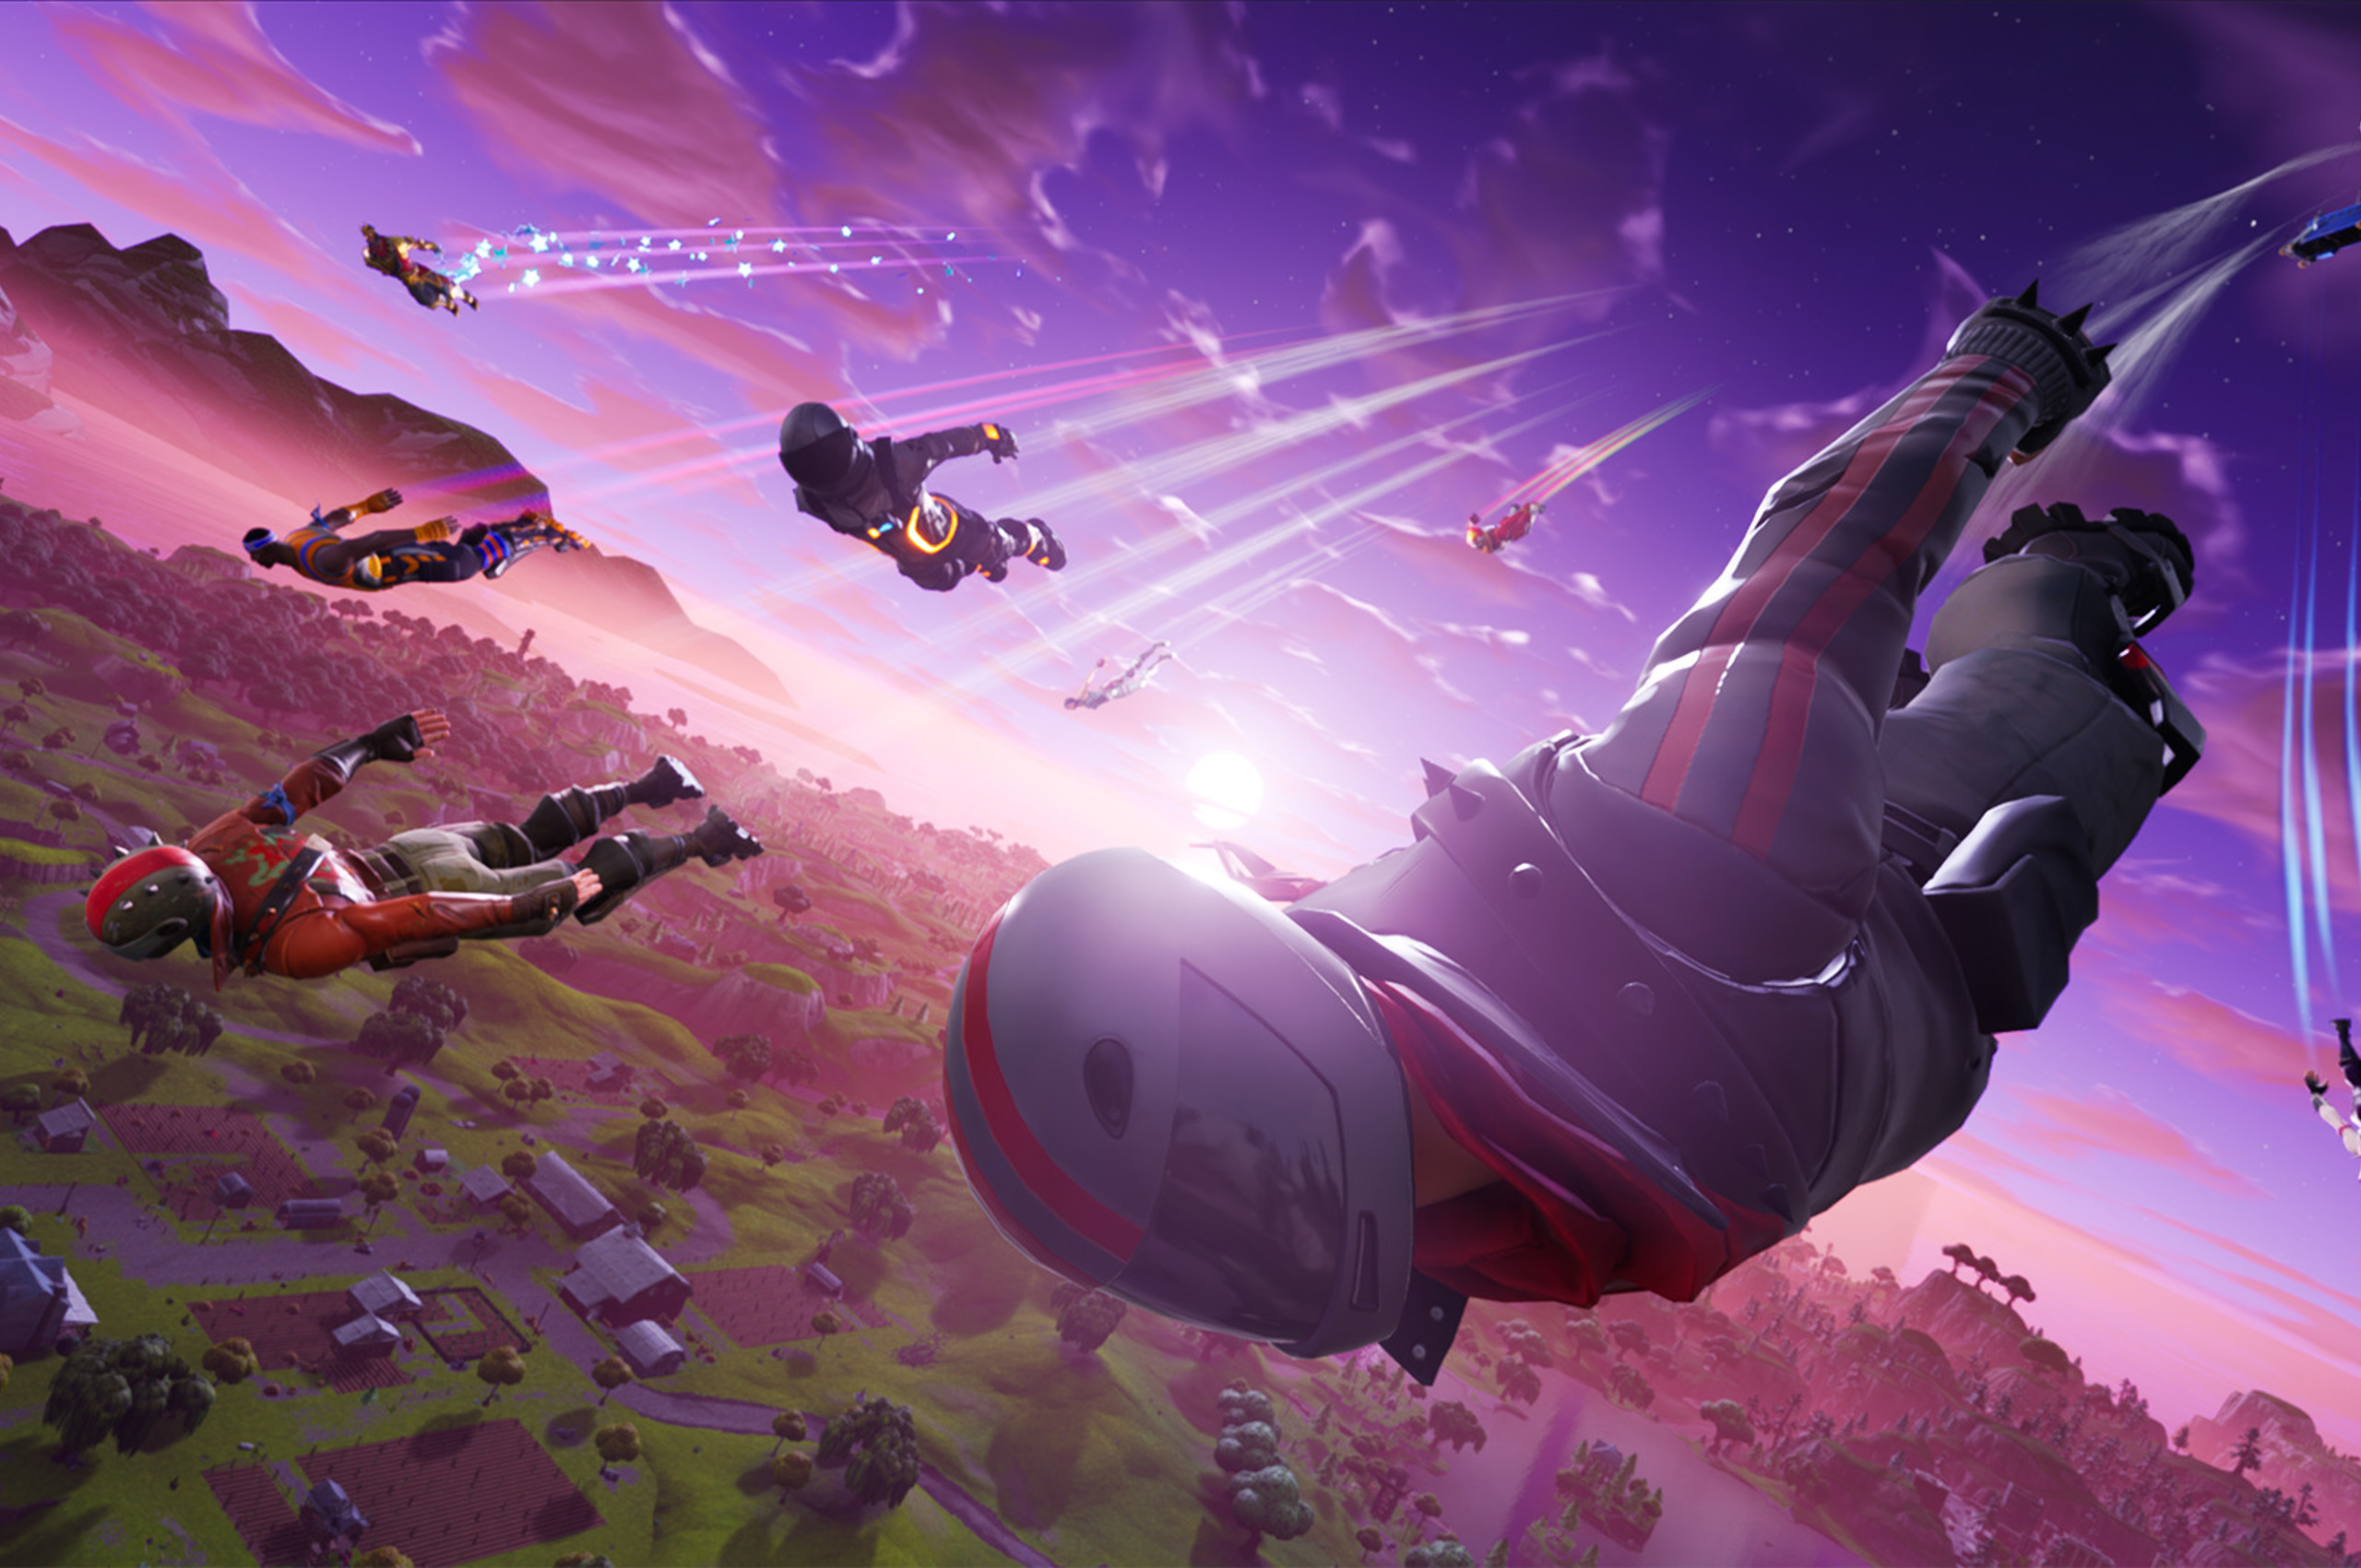 Fortnite Fall Skirmish detailed, 78.3 million players served in August